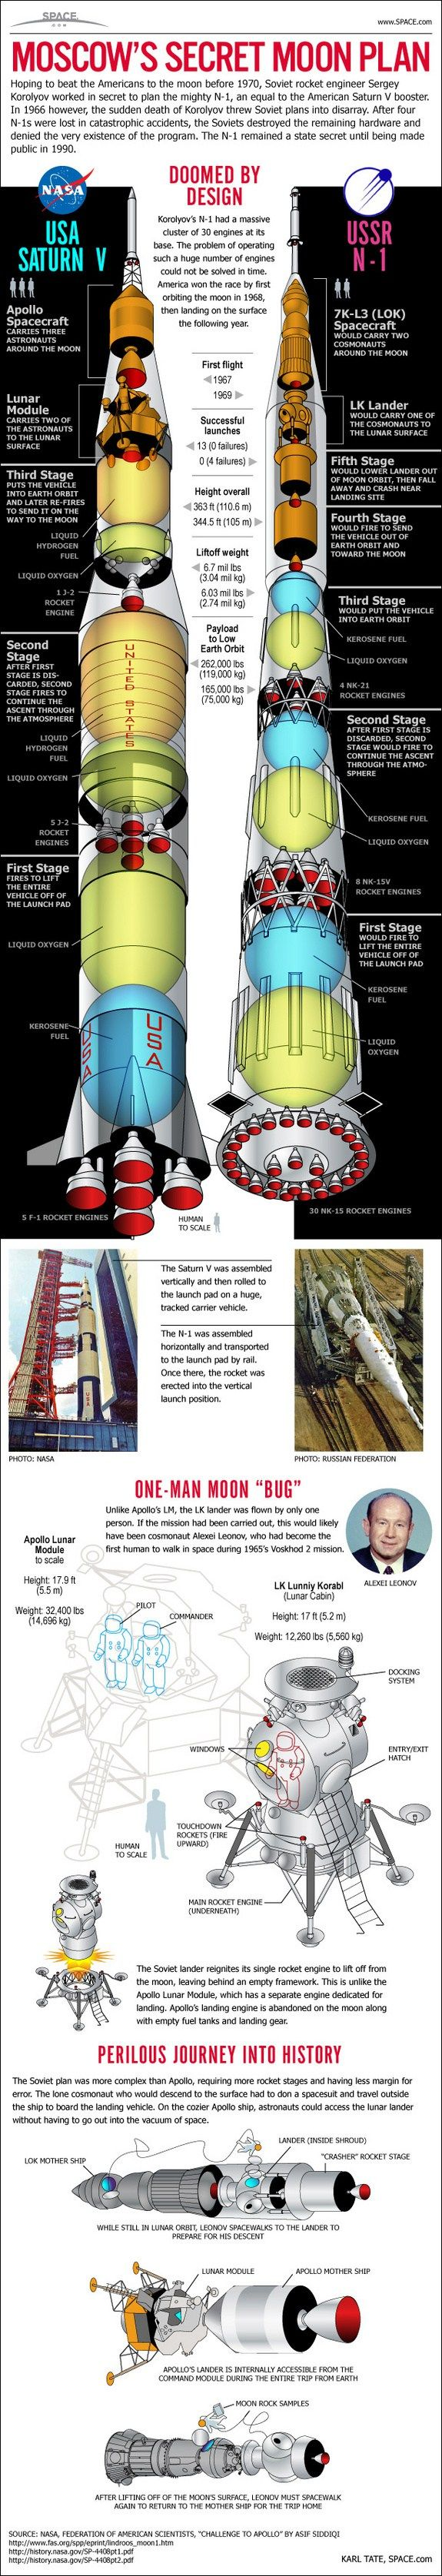 While the Soviet Union may not have reached the Moon back at the height of the Cold War, they were certainly working on it. Here, meet the N-1, the brainchild of engineer Sergey Korolyov. The rocket and its four failed launchesremained a state secret for decades. Source Space.com: All about our solar system, outer space...  Read more  →